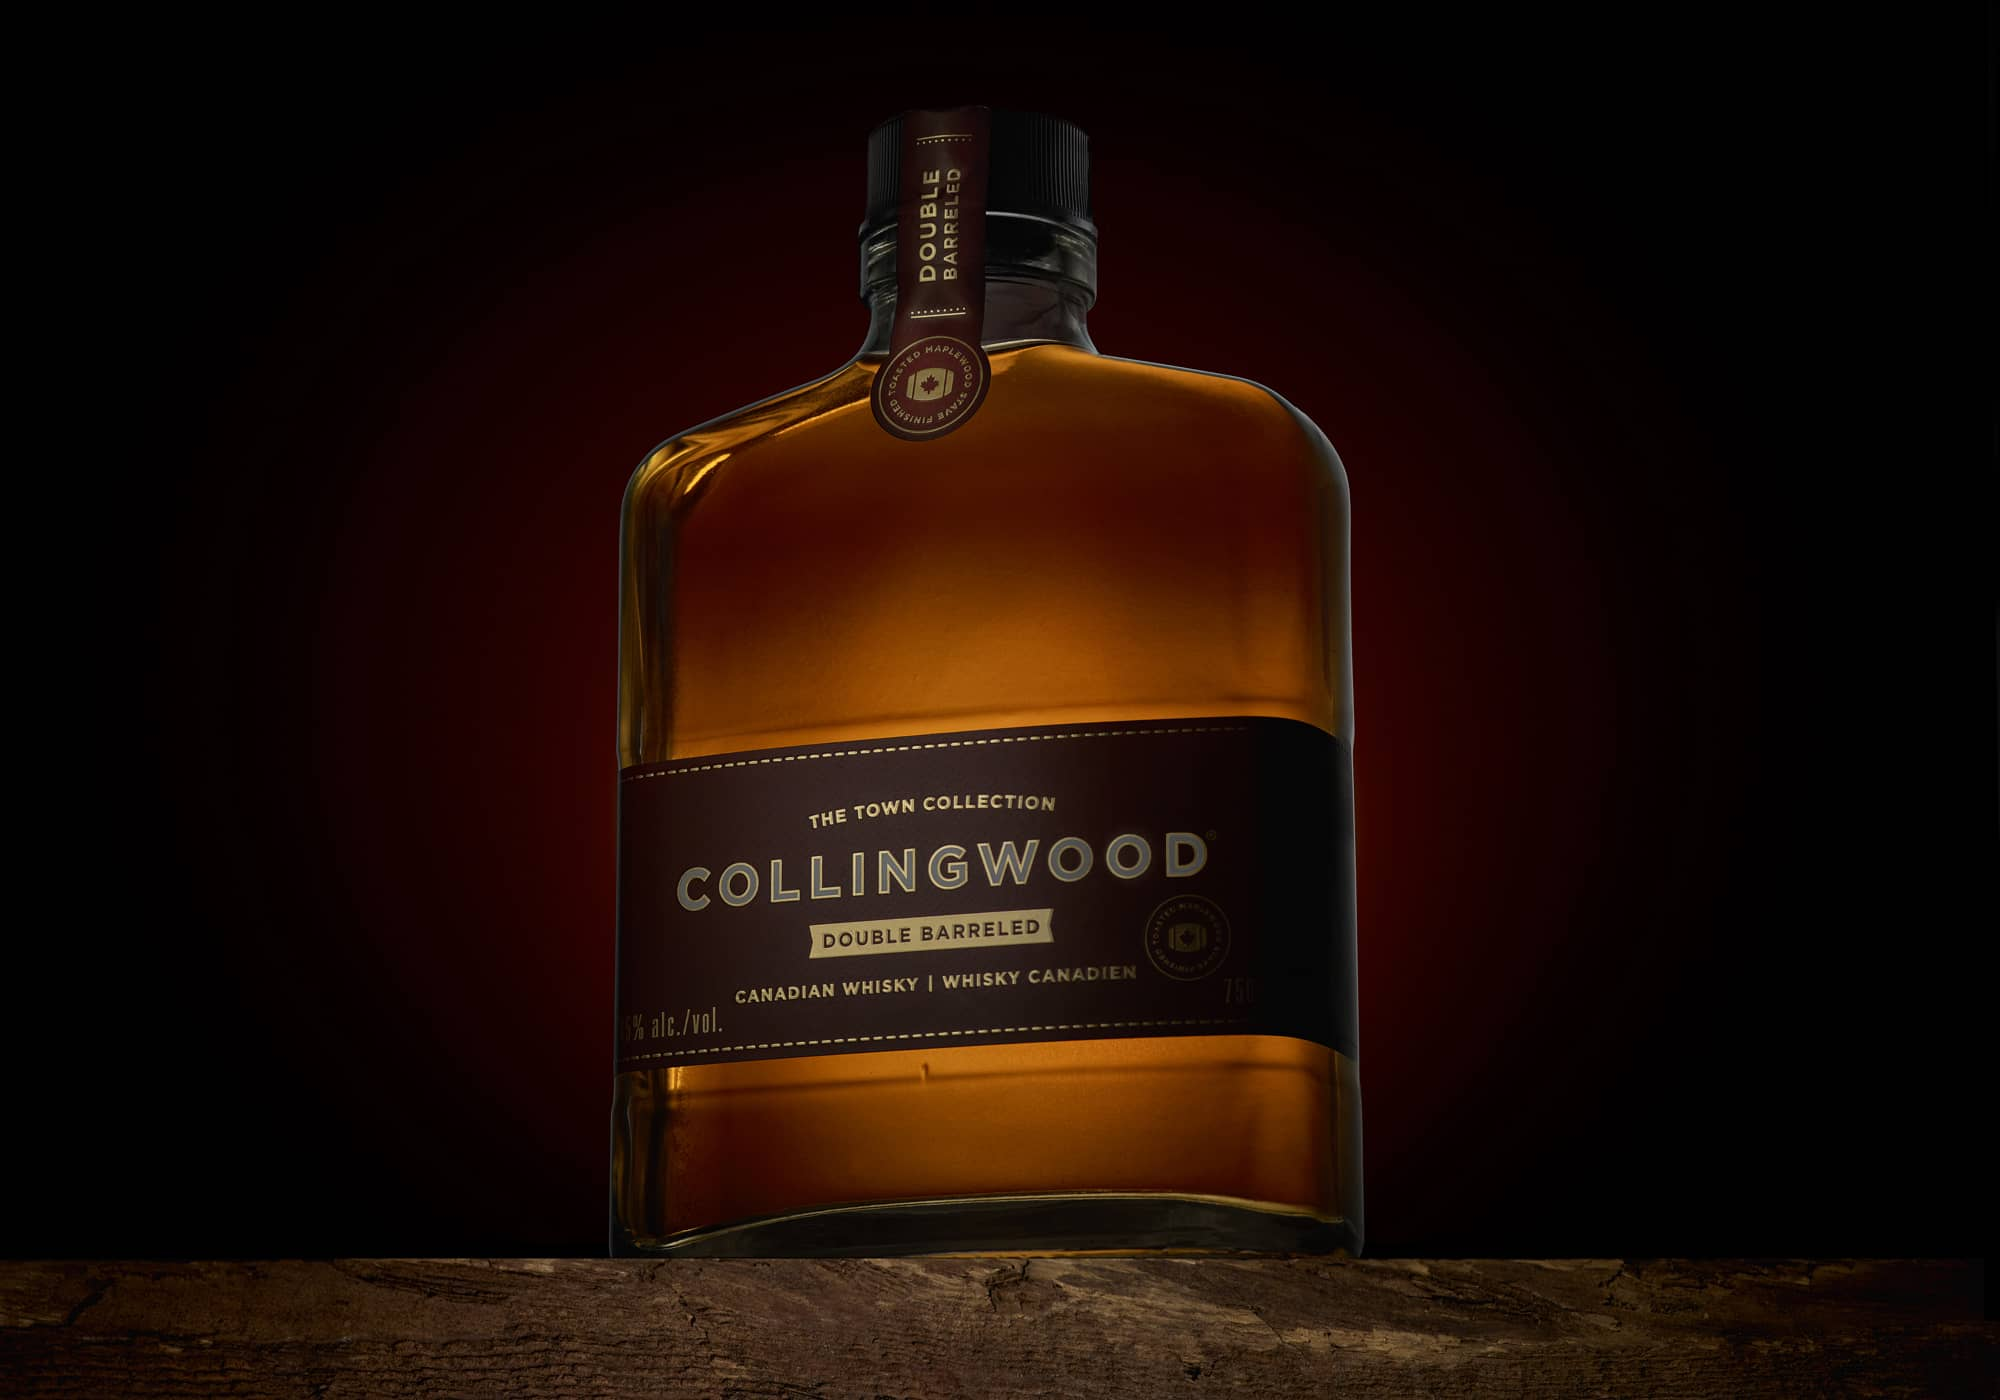 The Town Collection Collingwood Double Barreled Whisky